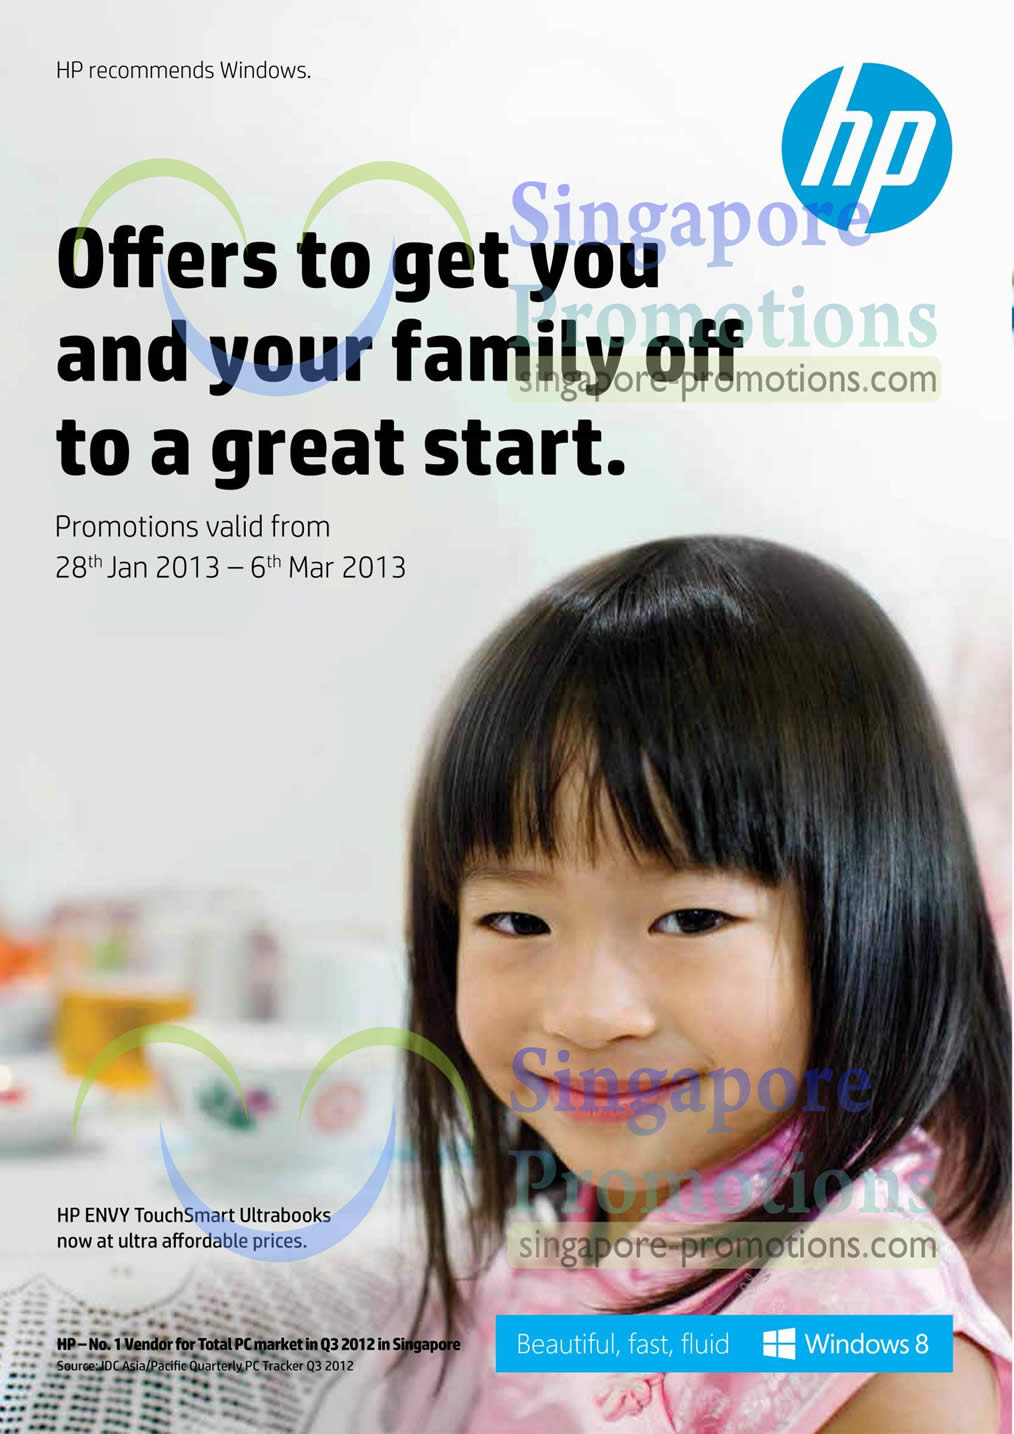 Offers to Get You and Your Family to a Great Start